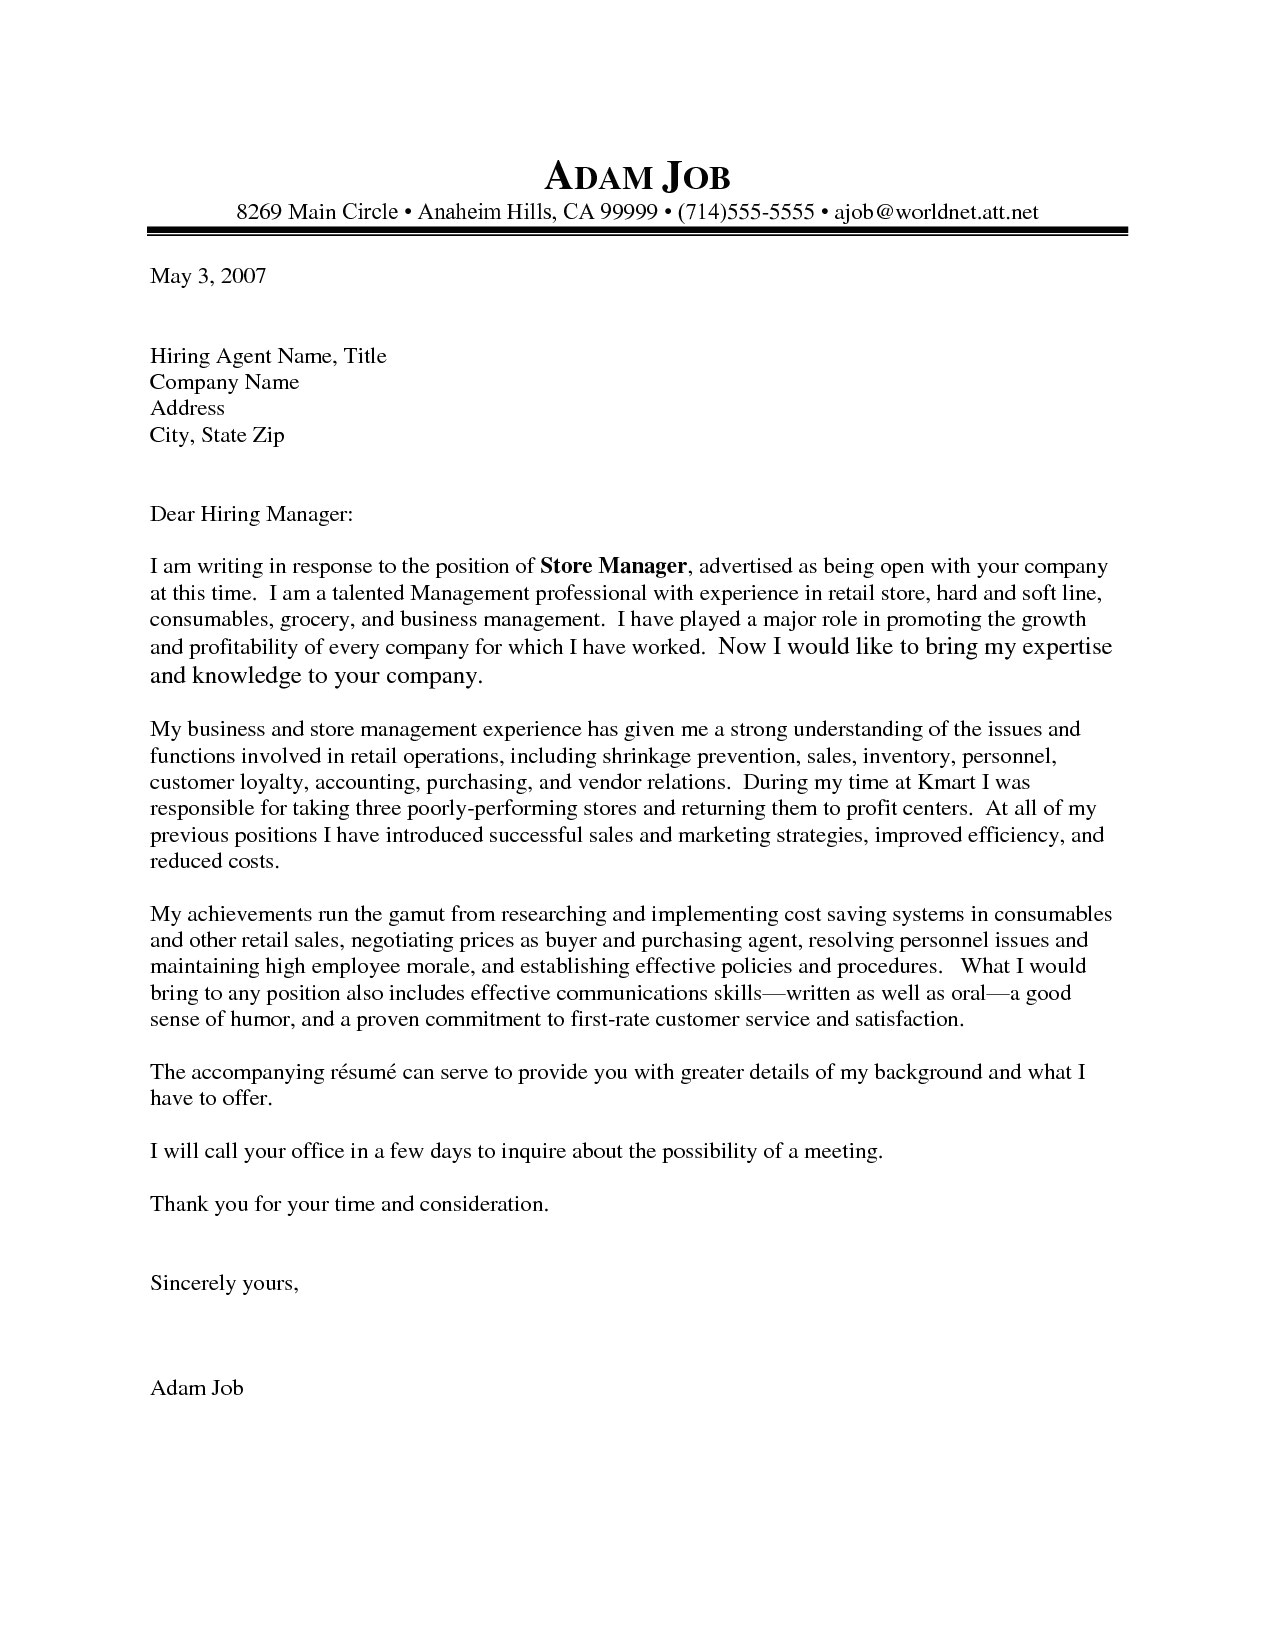 retail management cover letters cool ideas retail manager cover letter 11 sample for cv resume ideas